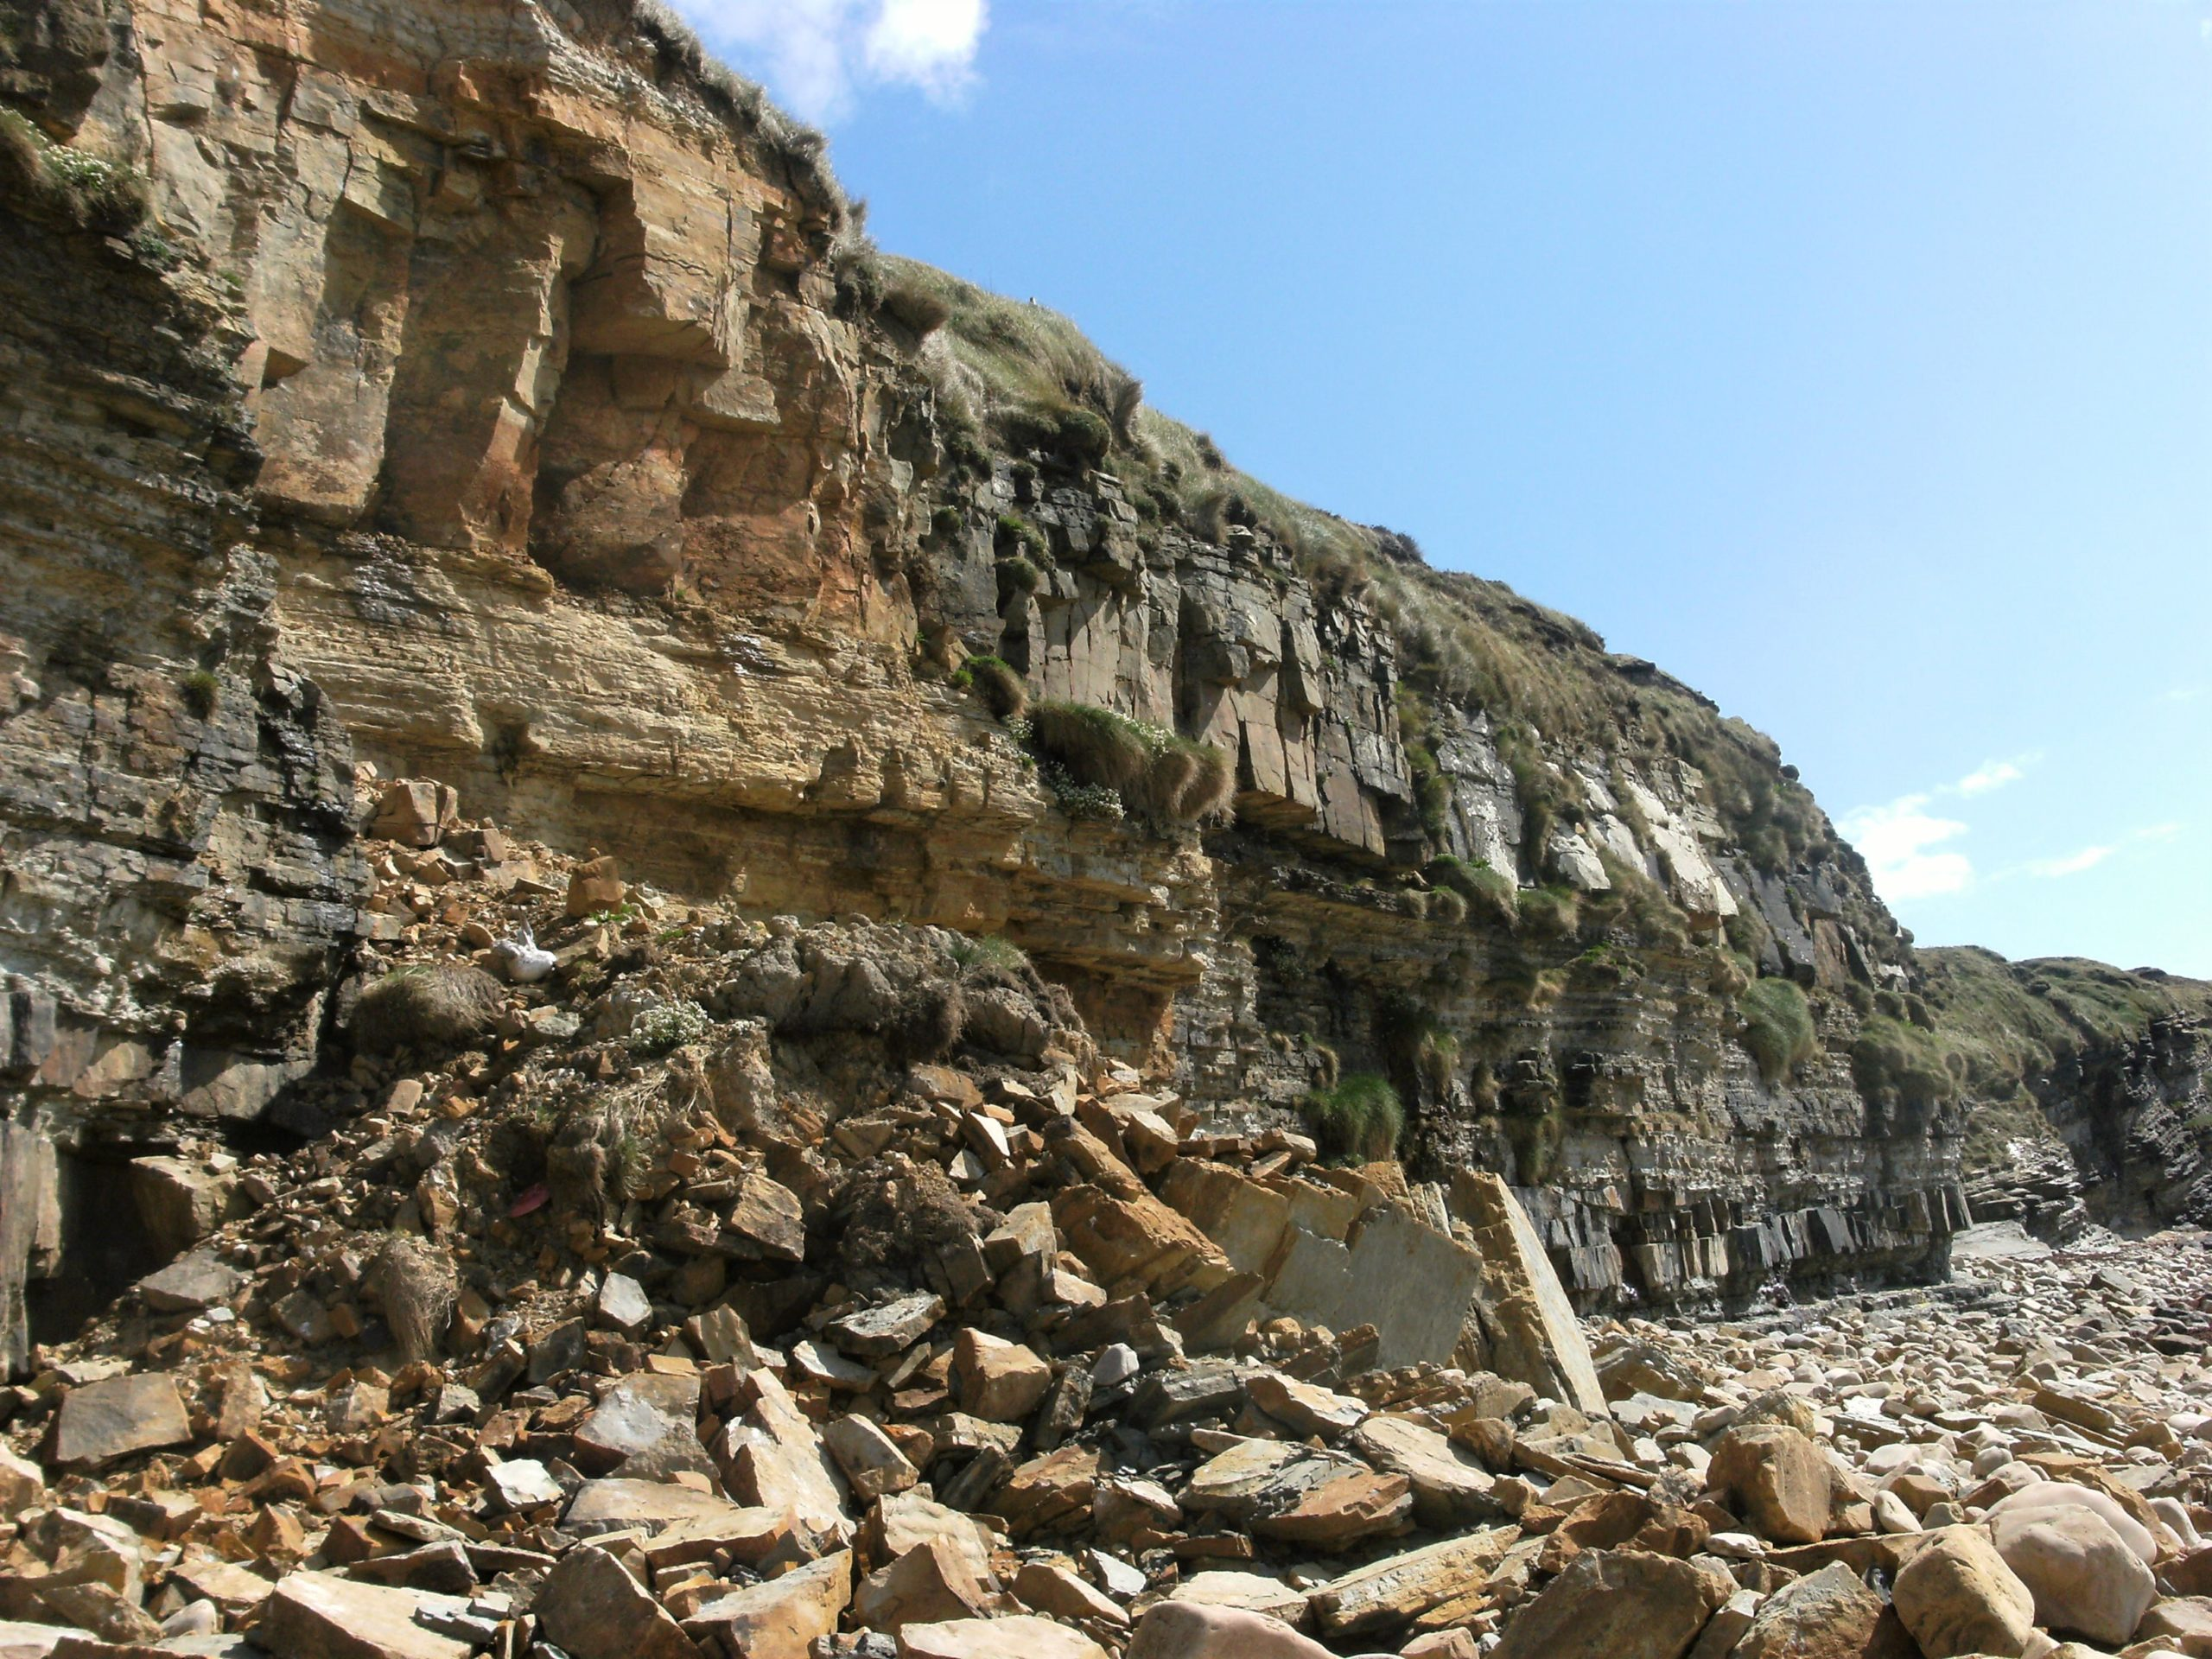 Orkney's crumbling cliffs (photograph by Marita Lueck)